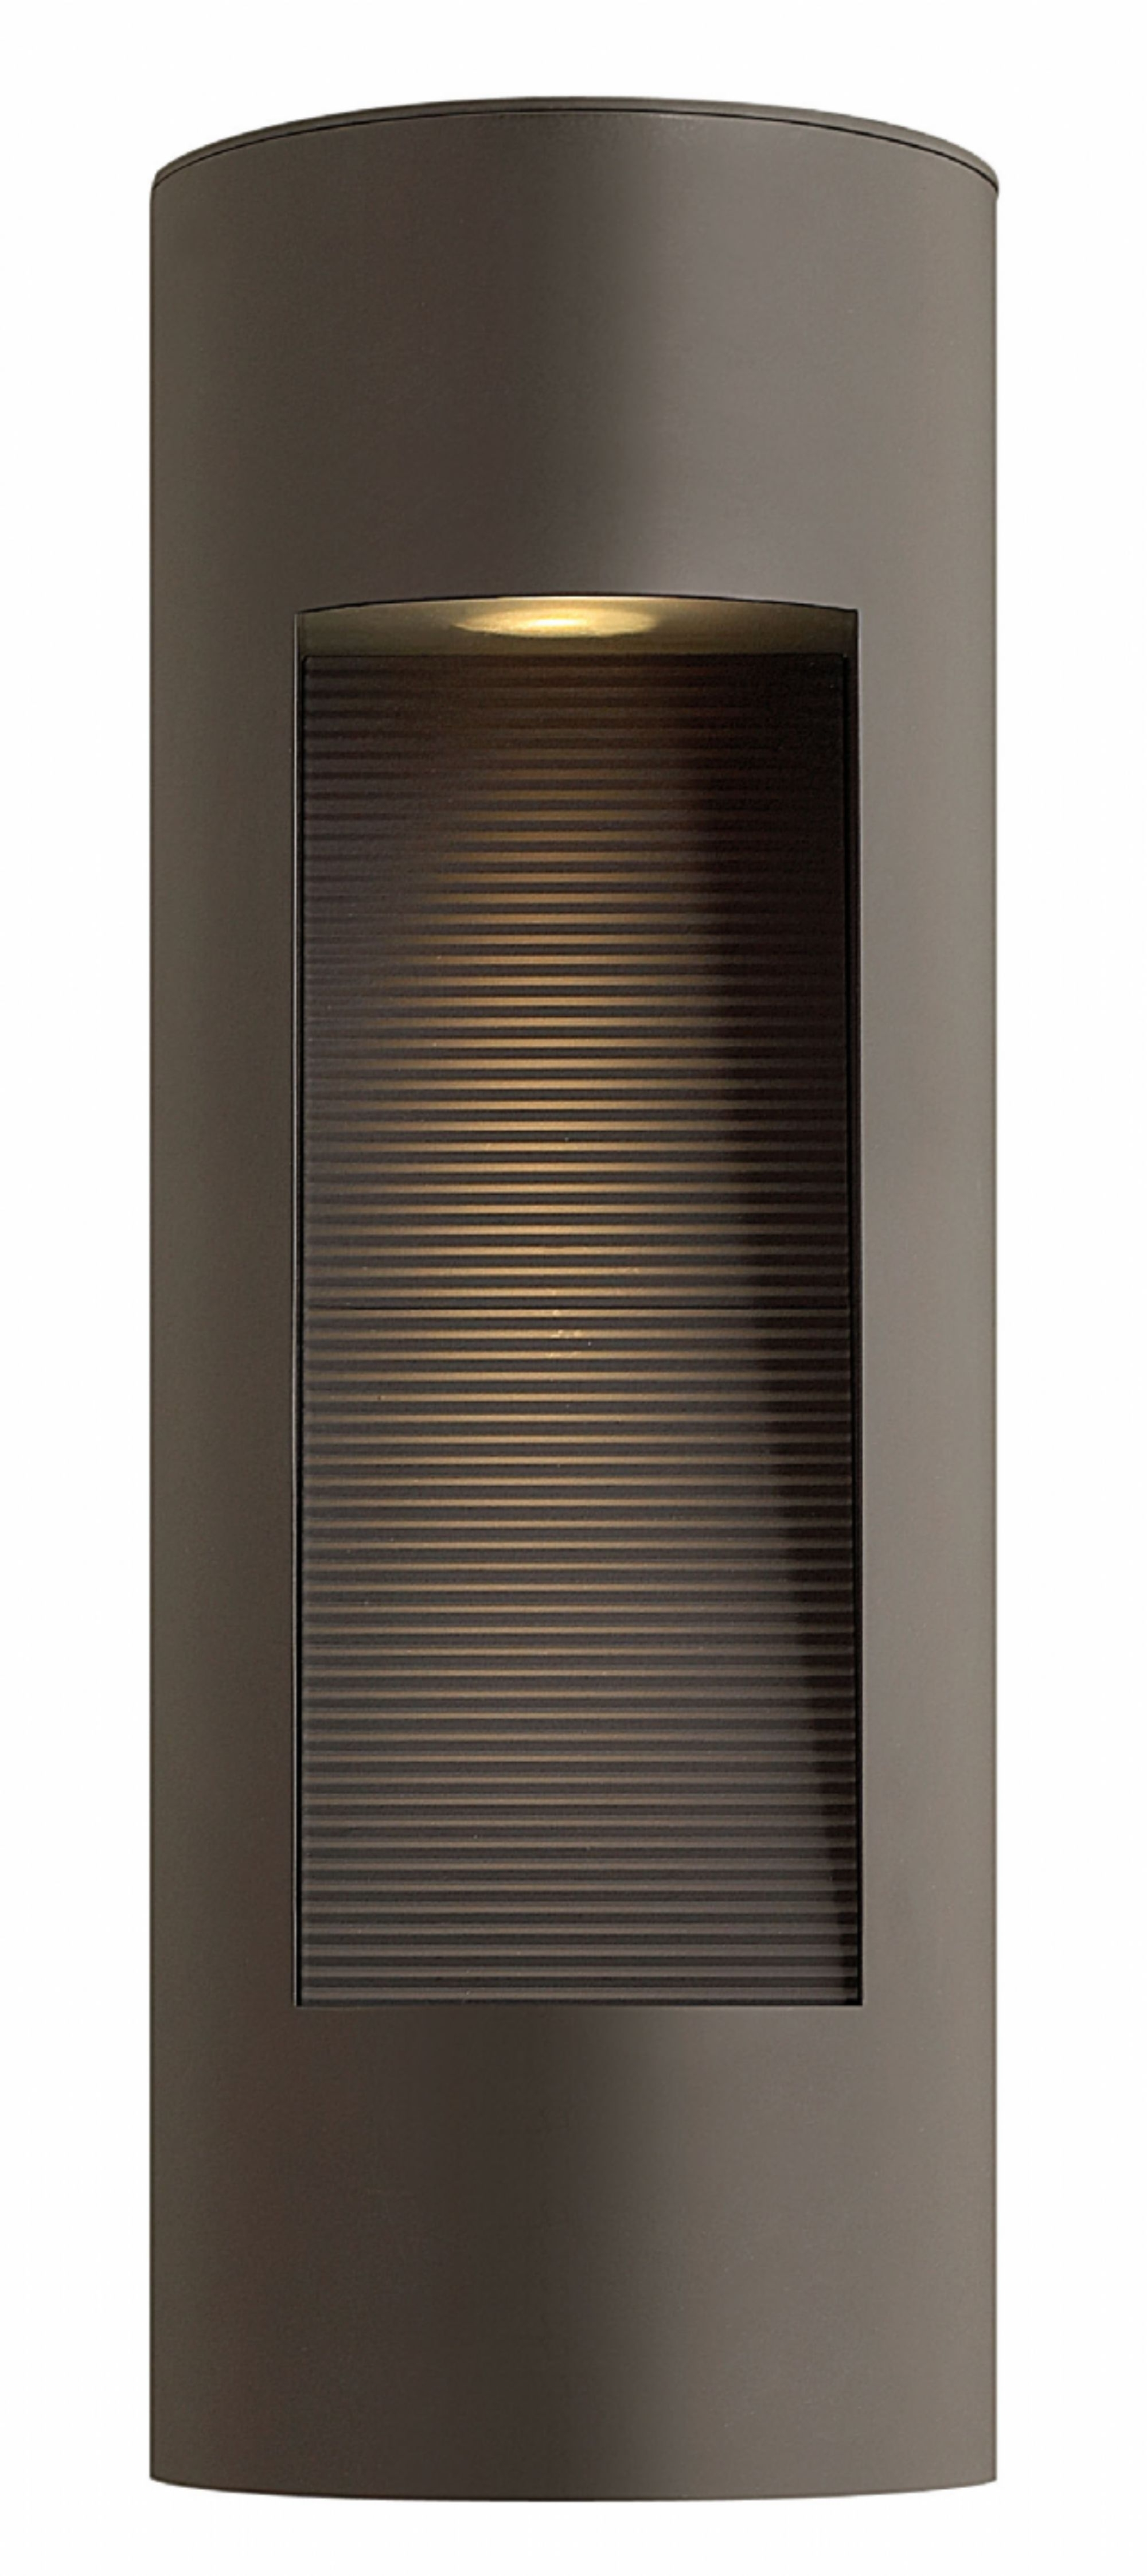 Widely Used Bronze Luna > Exterior Wall Mount Intended For Contemporary Hinkley Lighting (View 20 of 20)